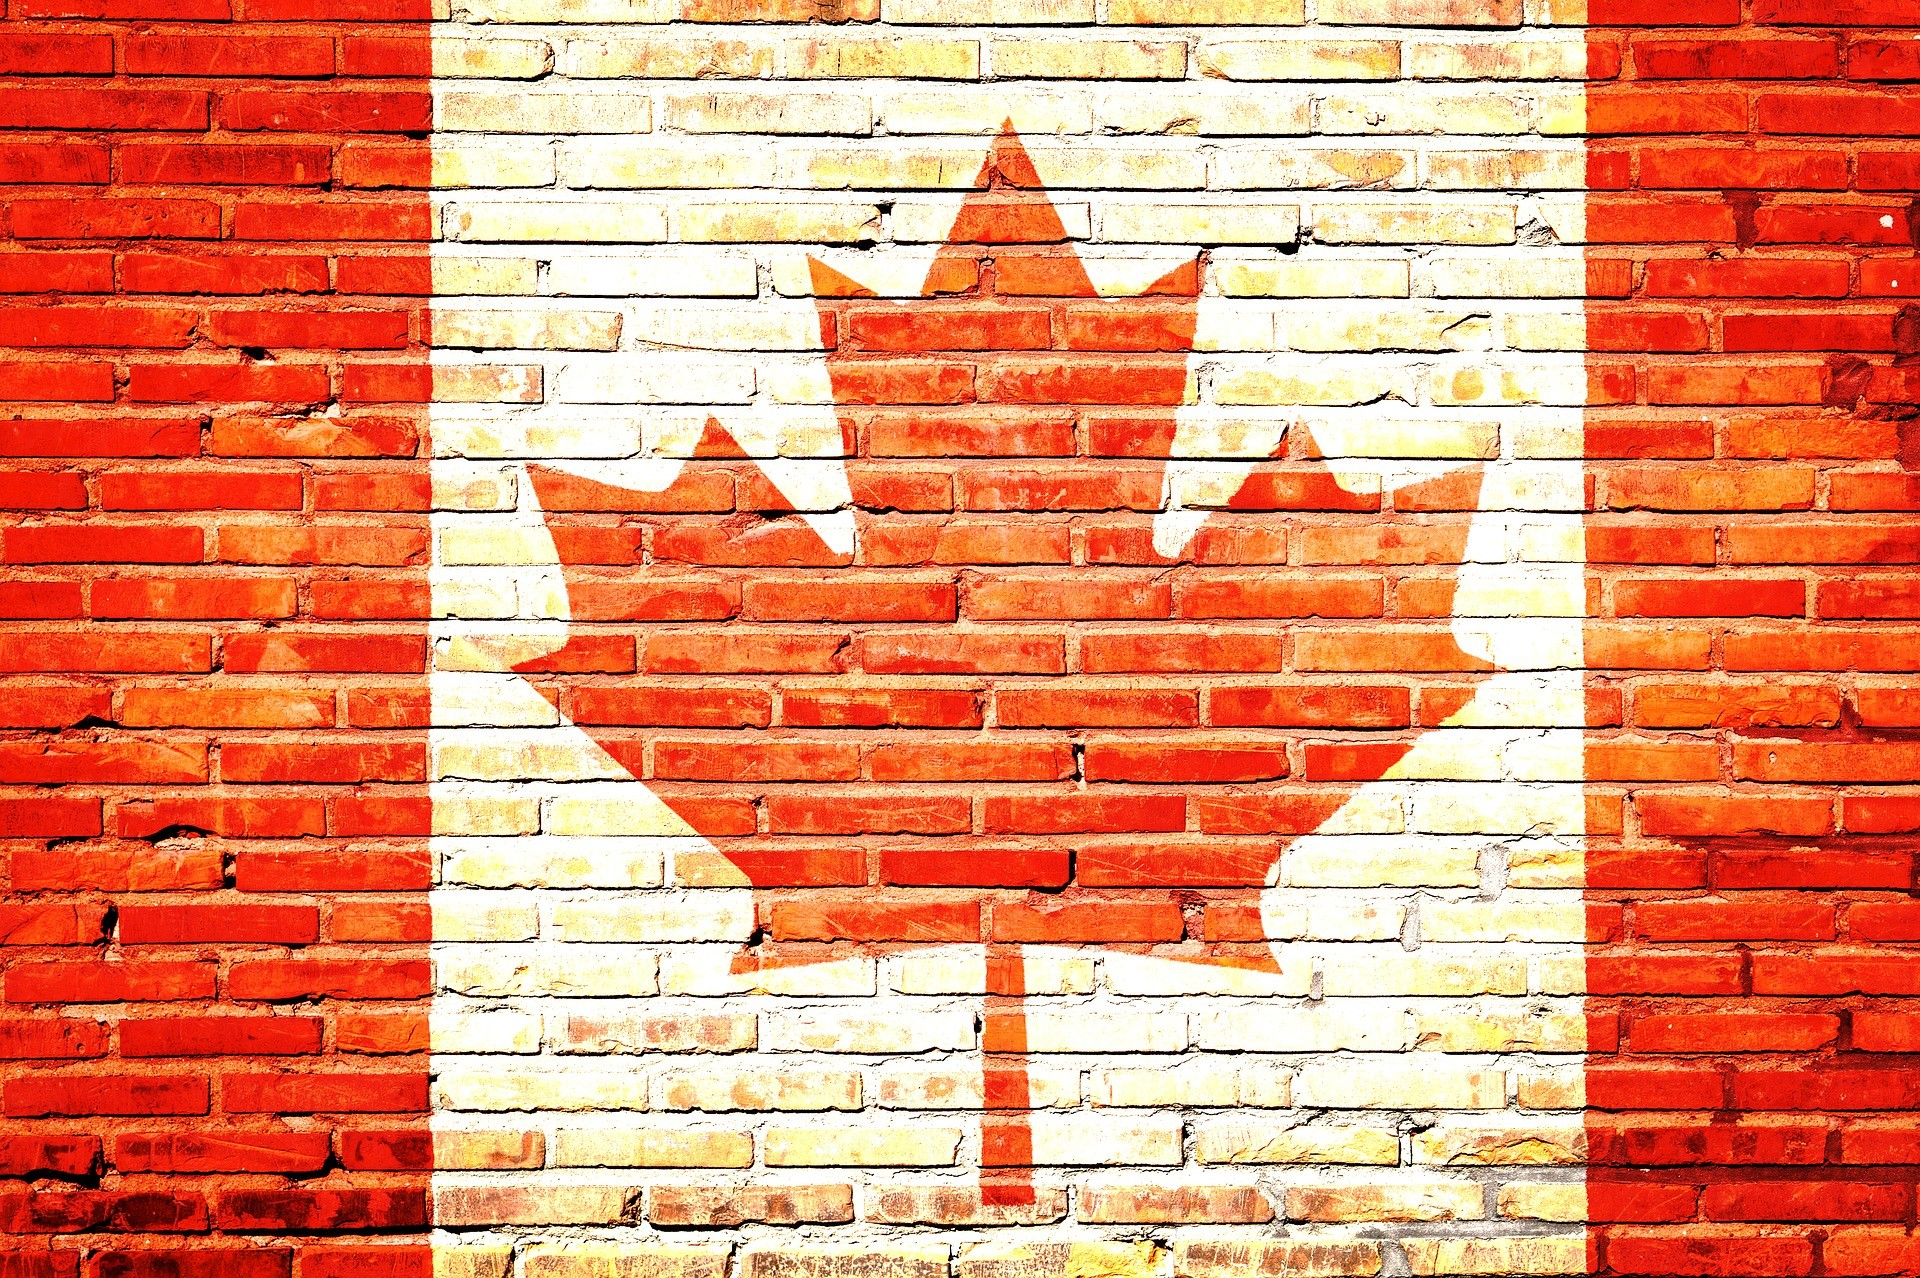 Canadian flag mural painted on a brick wall